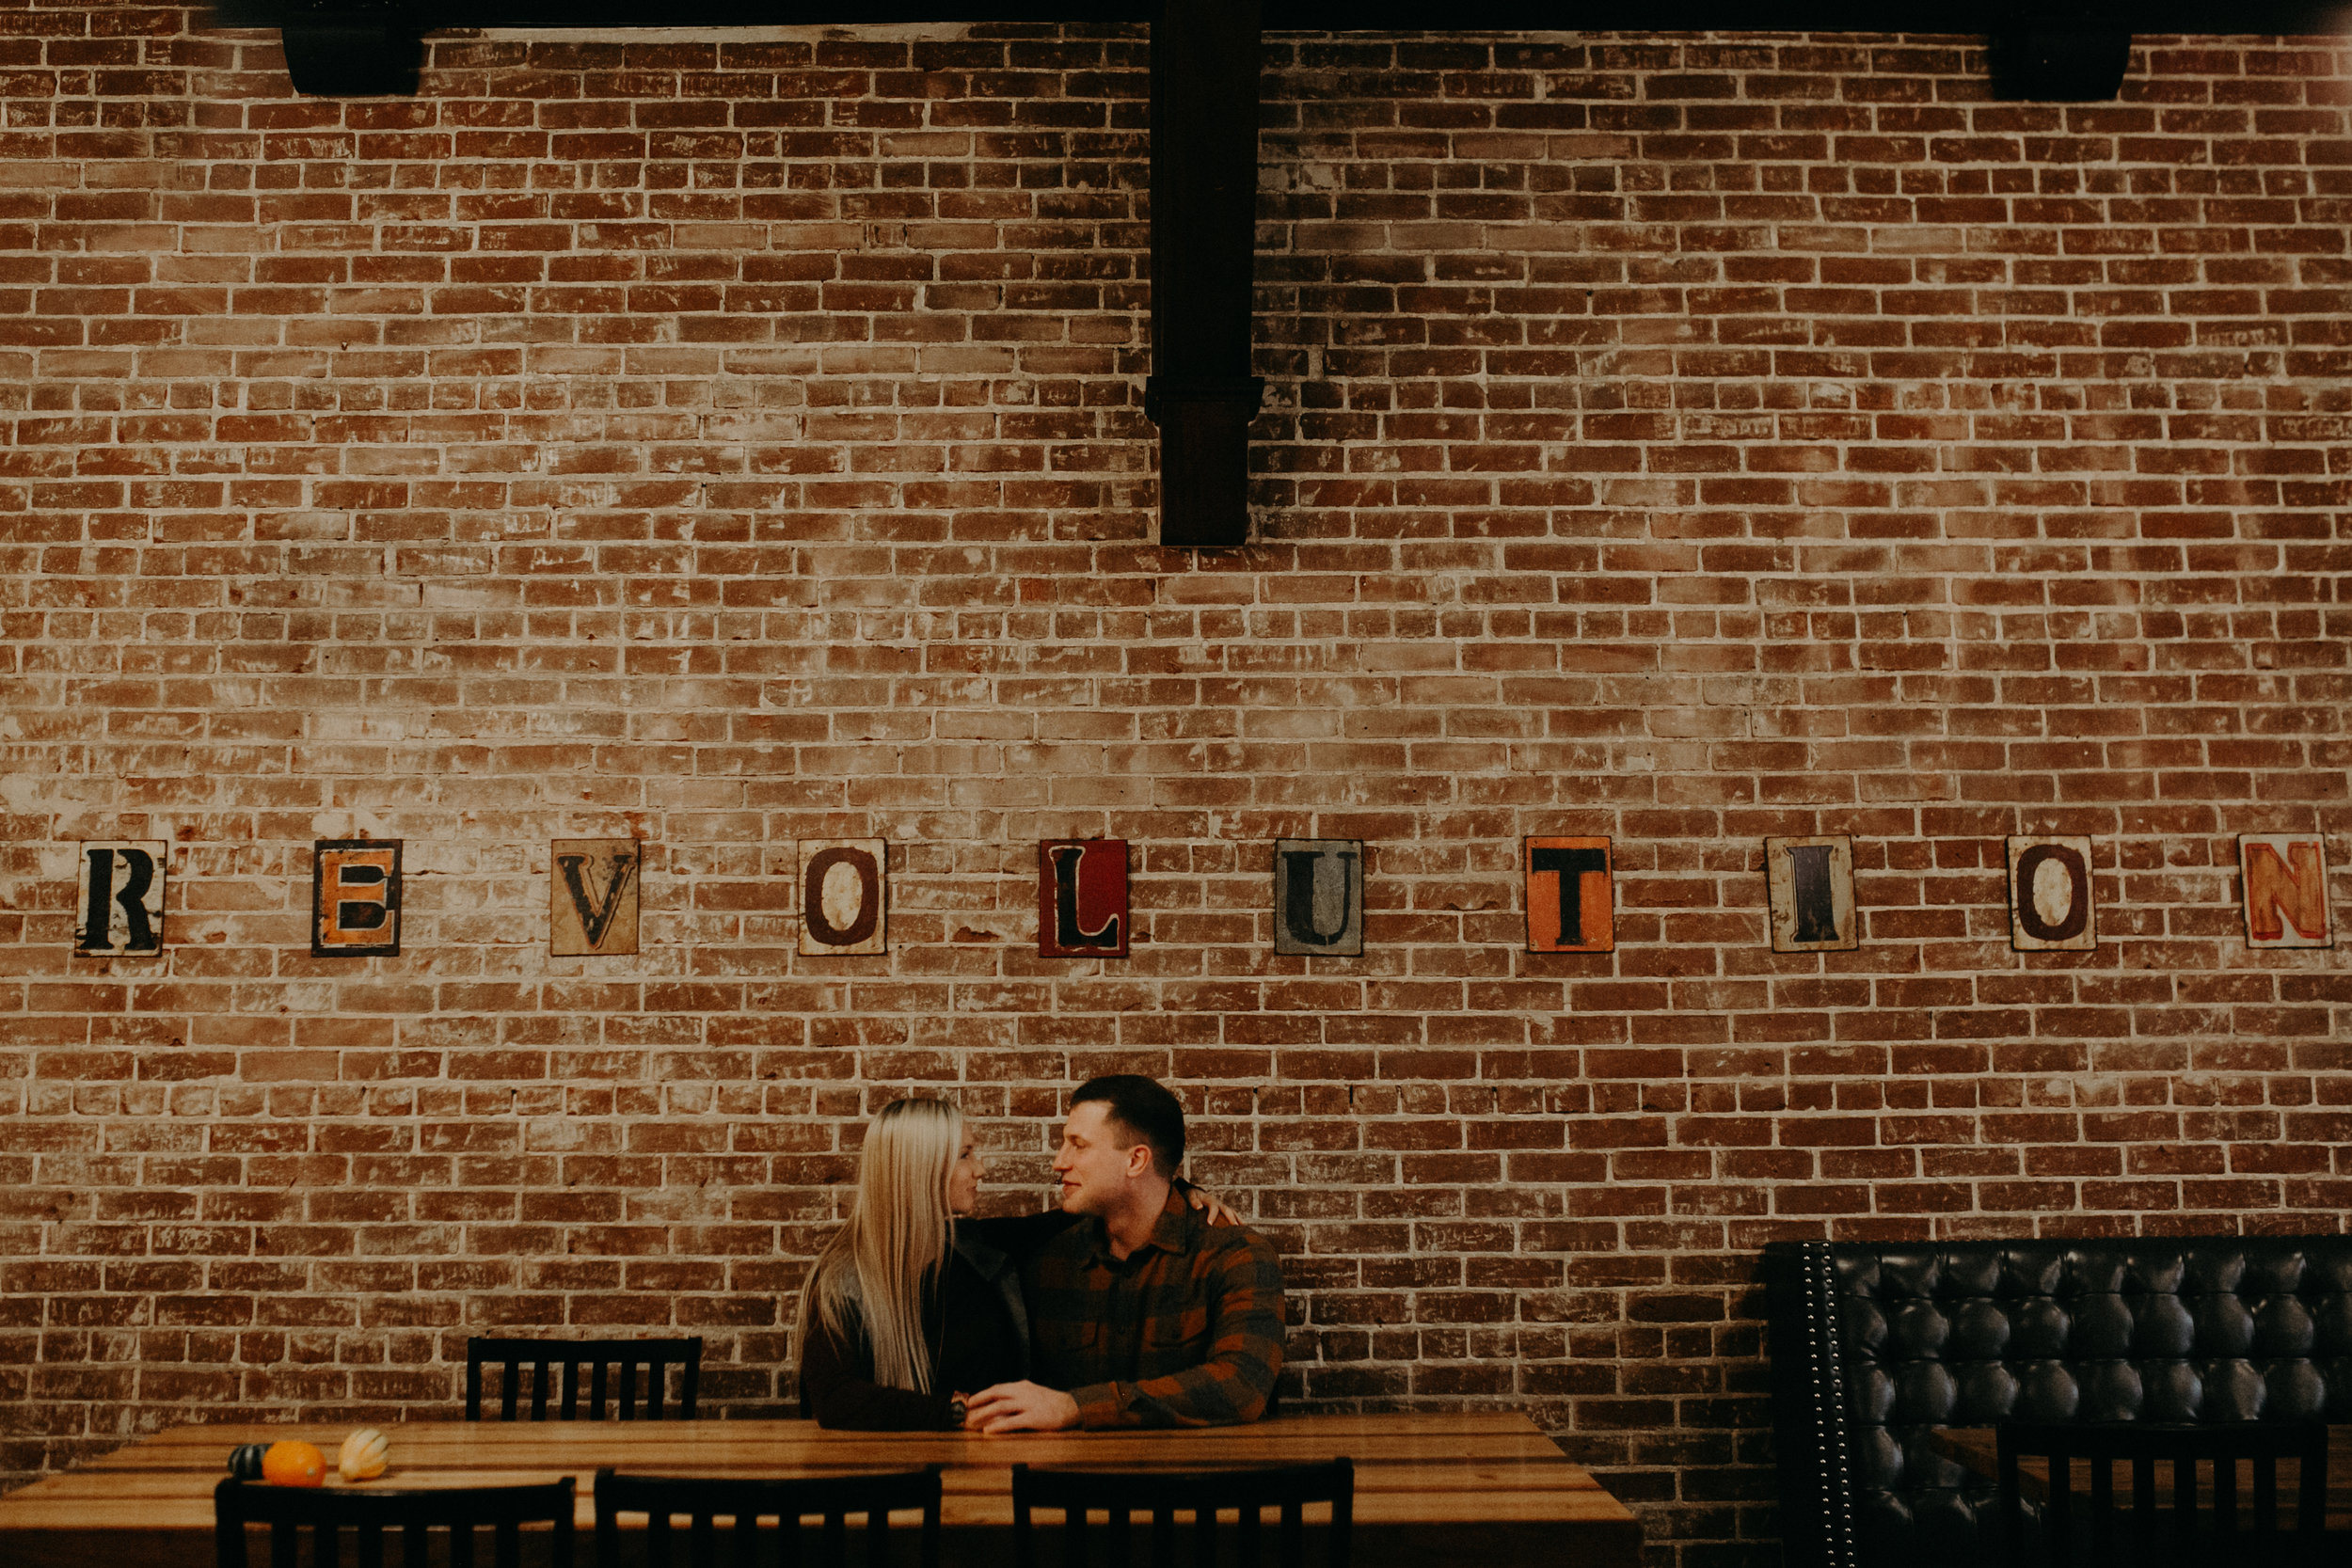 a hipster engagement session for a Wisconsin couple at Revolution Coffee in Black River Falls